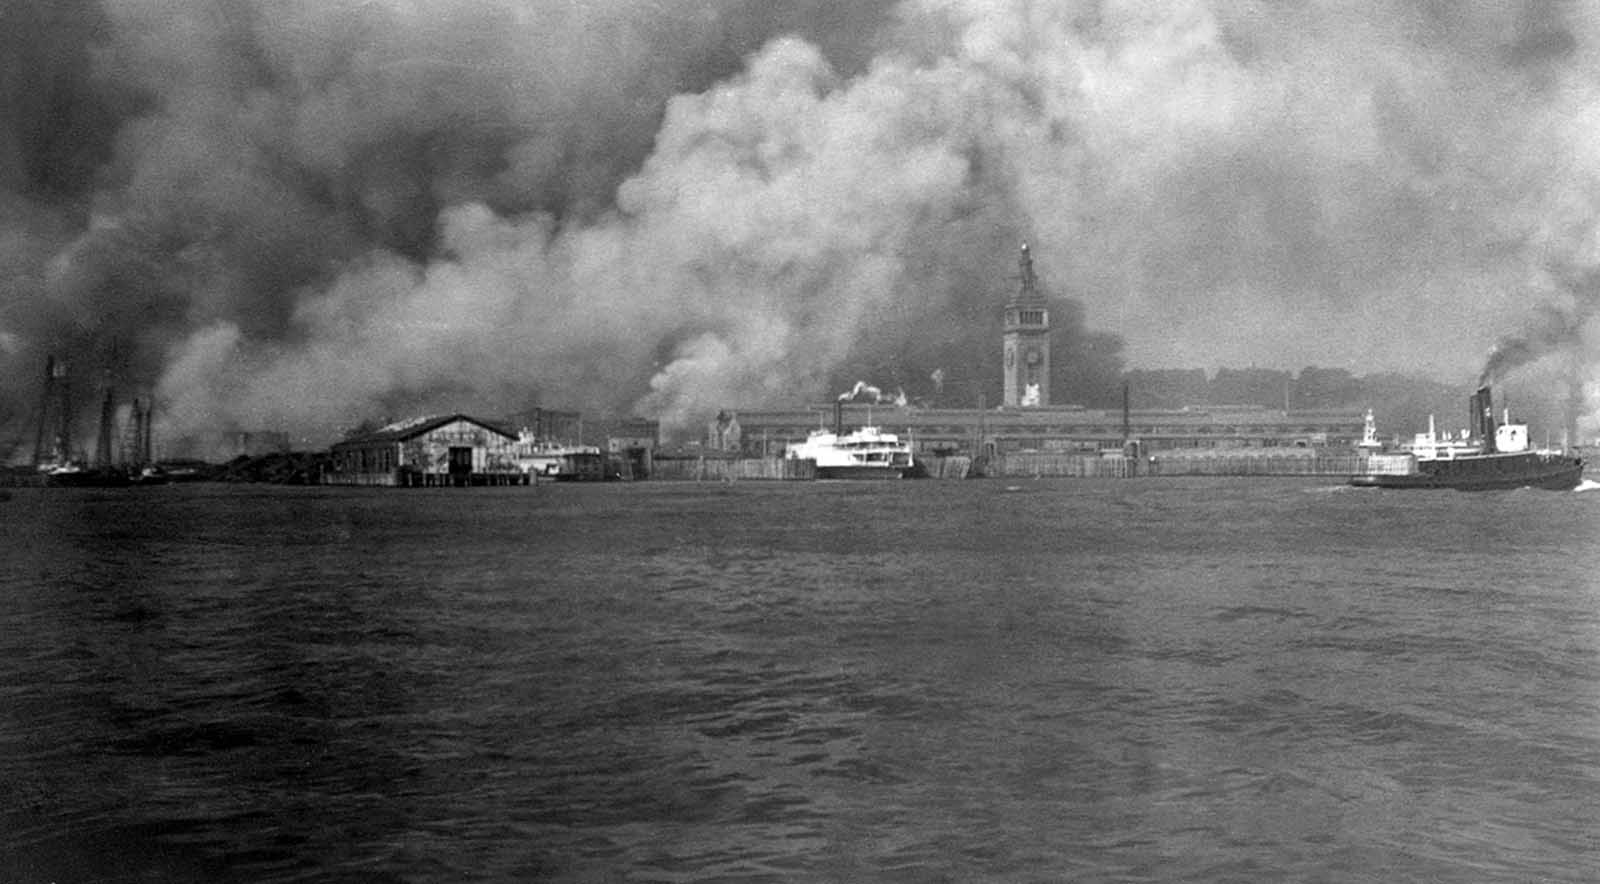 Smoke rises from burning buildings on the waterfront during the fire after the earthquake of 1906 in San Francisco, California.